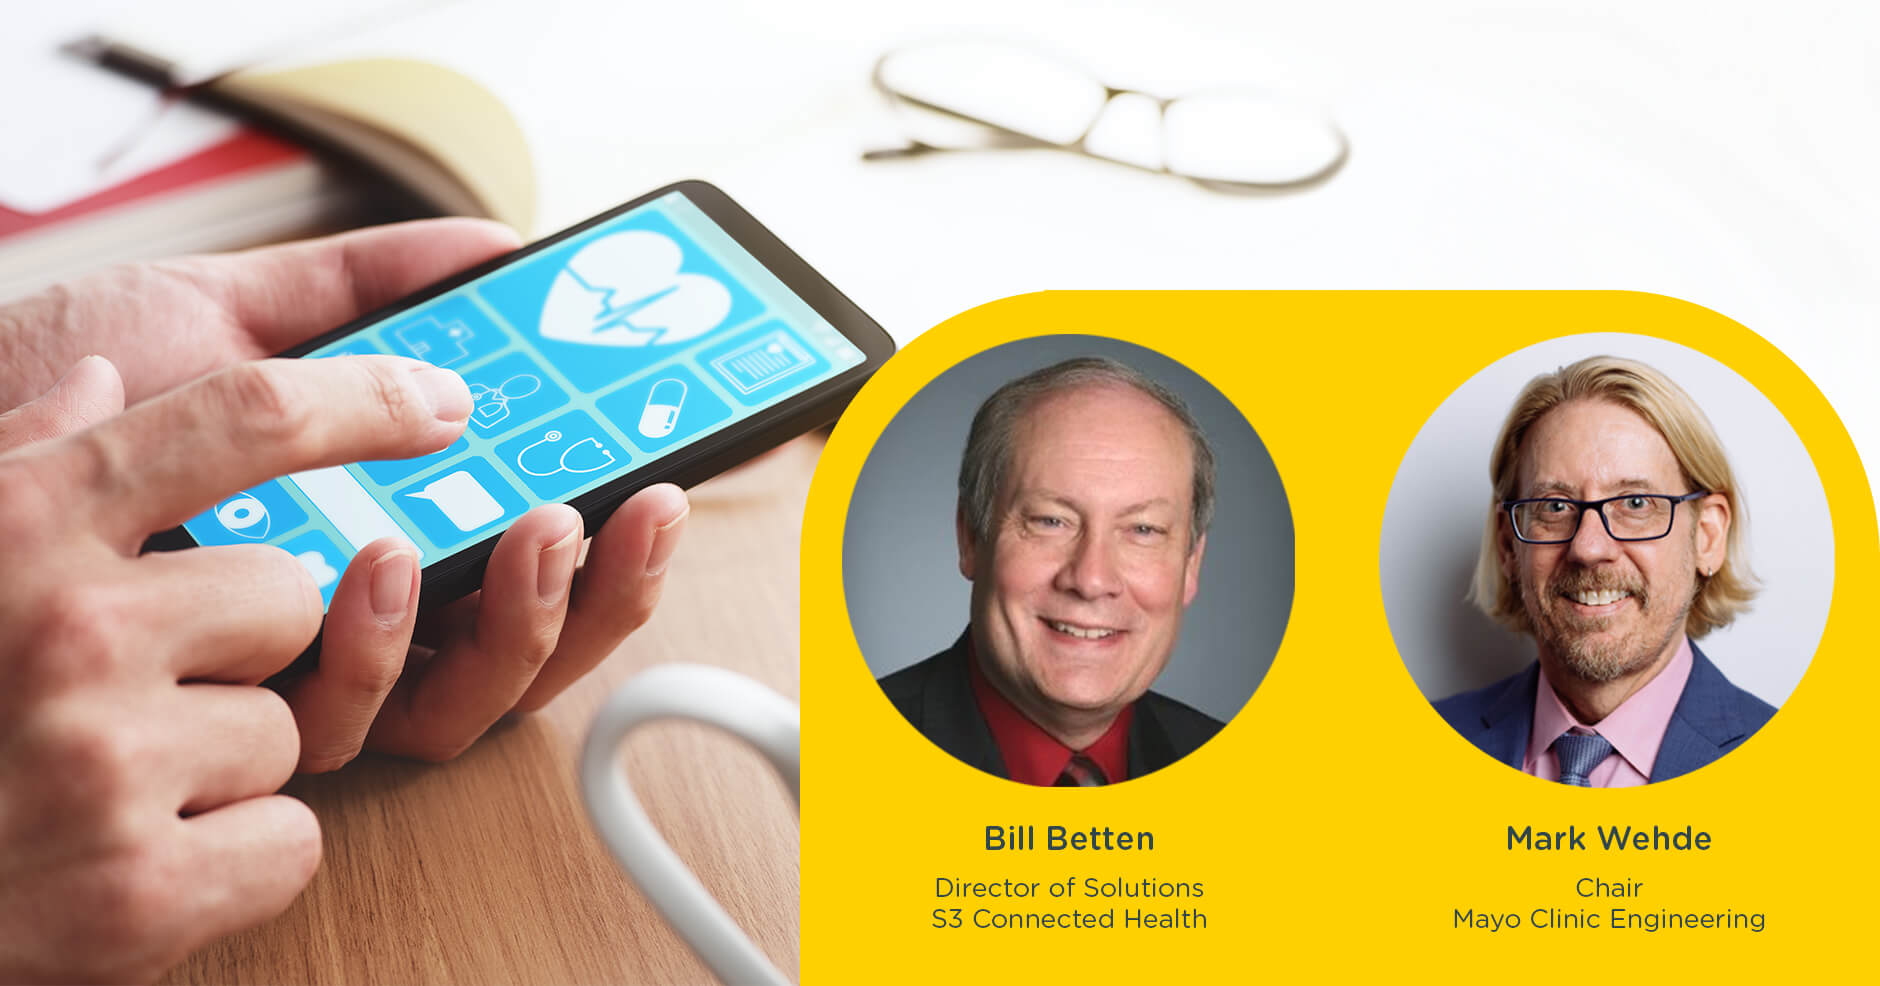 The future of connected devices and digital health: an interview with Mark Wehde, Chair, Mayo Clinic Engineering